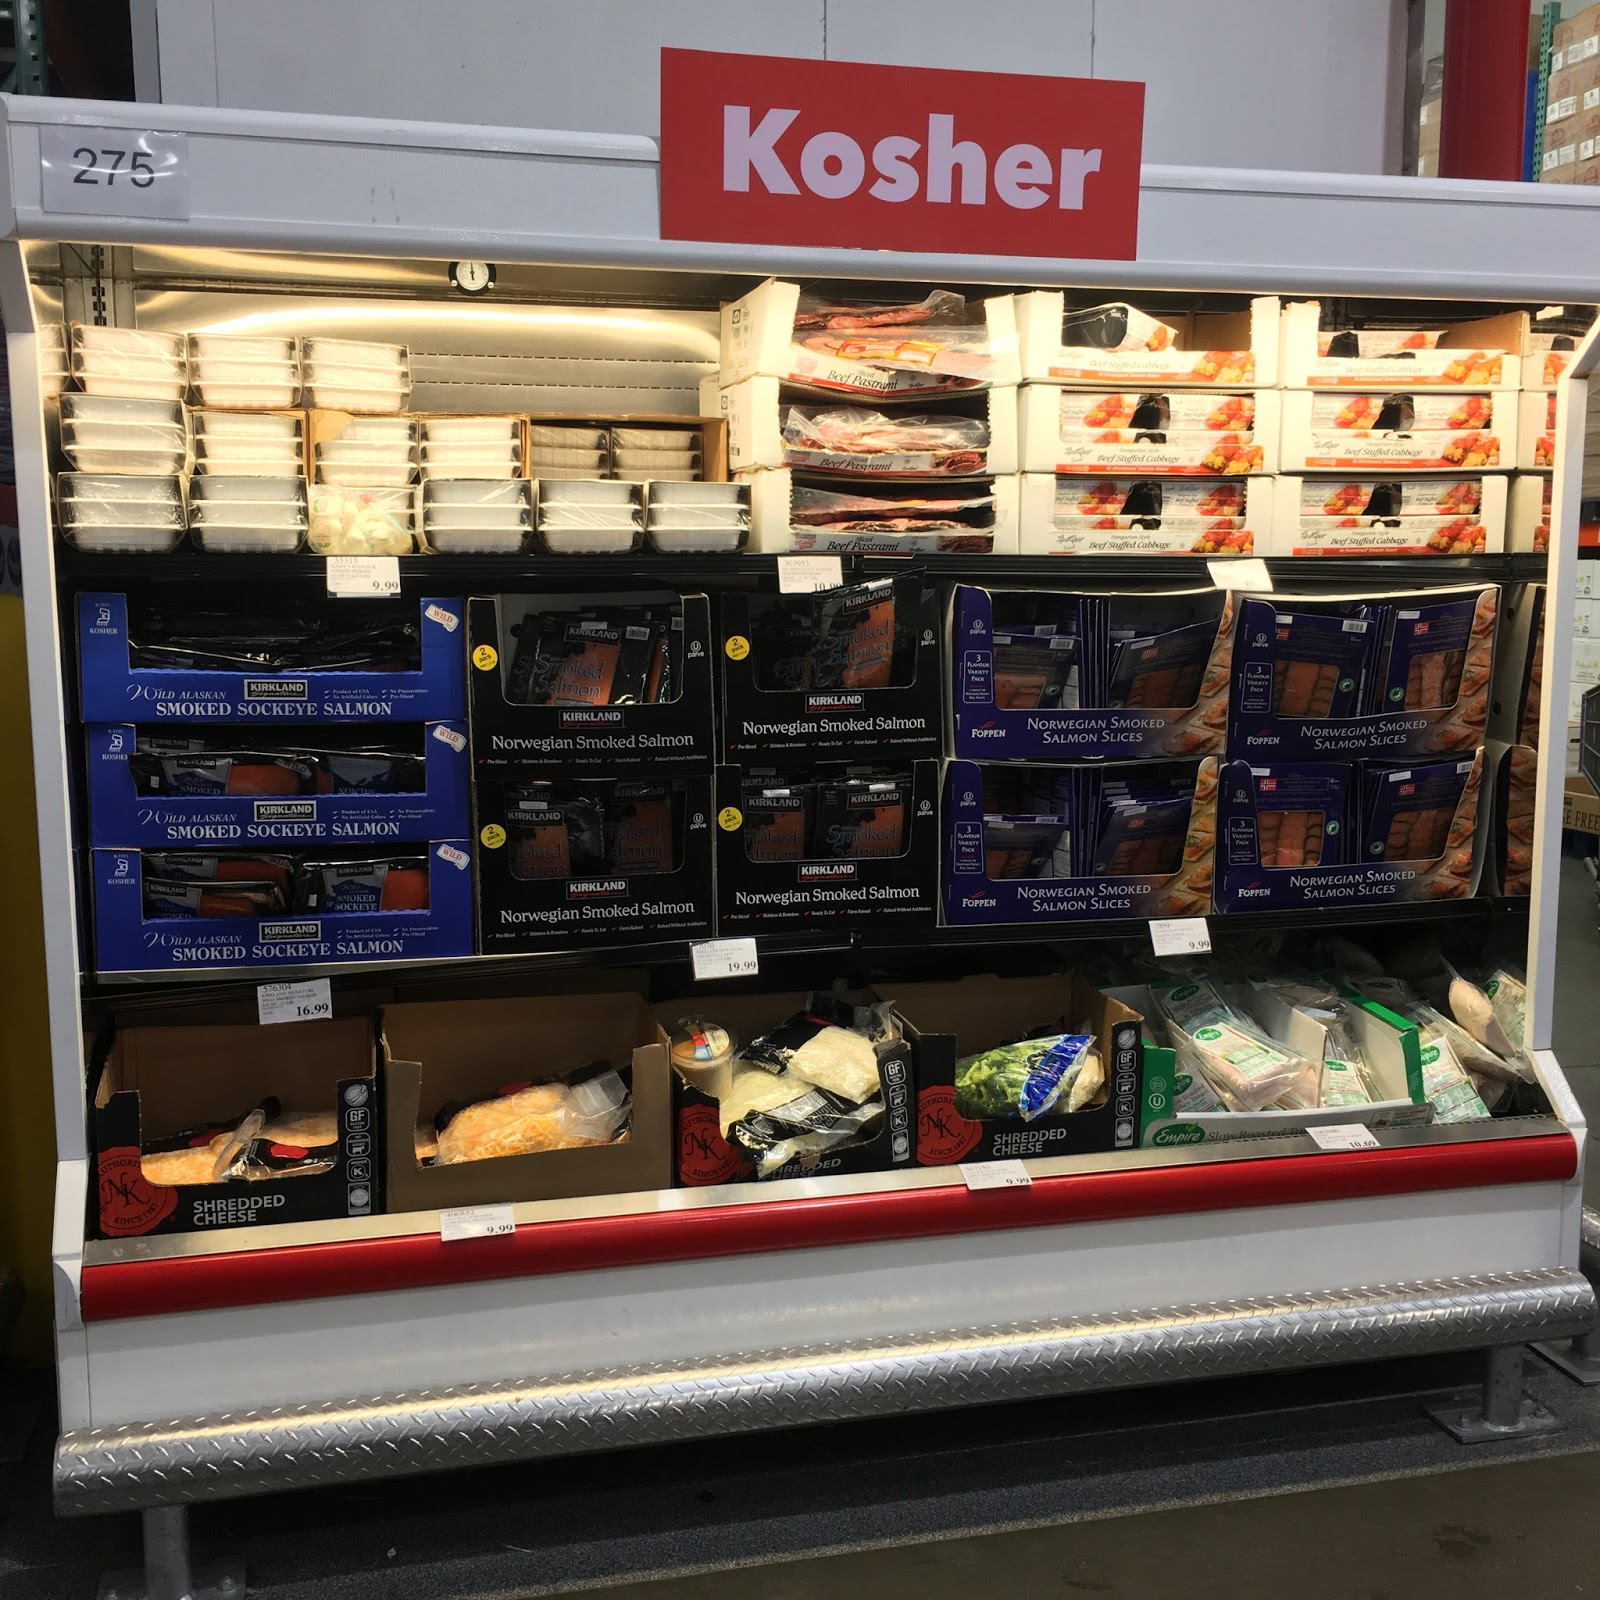 I Love How The Frederick Costco Has A Dedicated Refrigerated Case For Kosher Foods